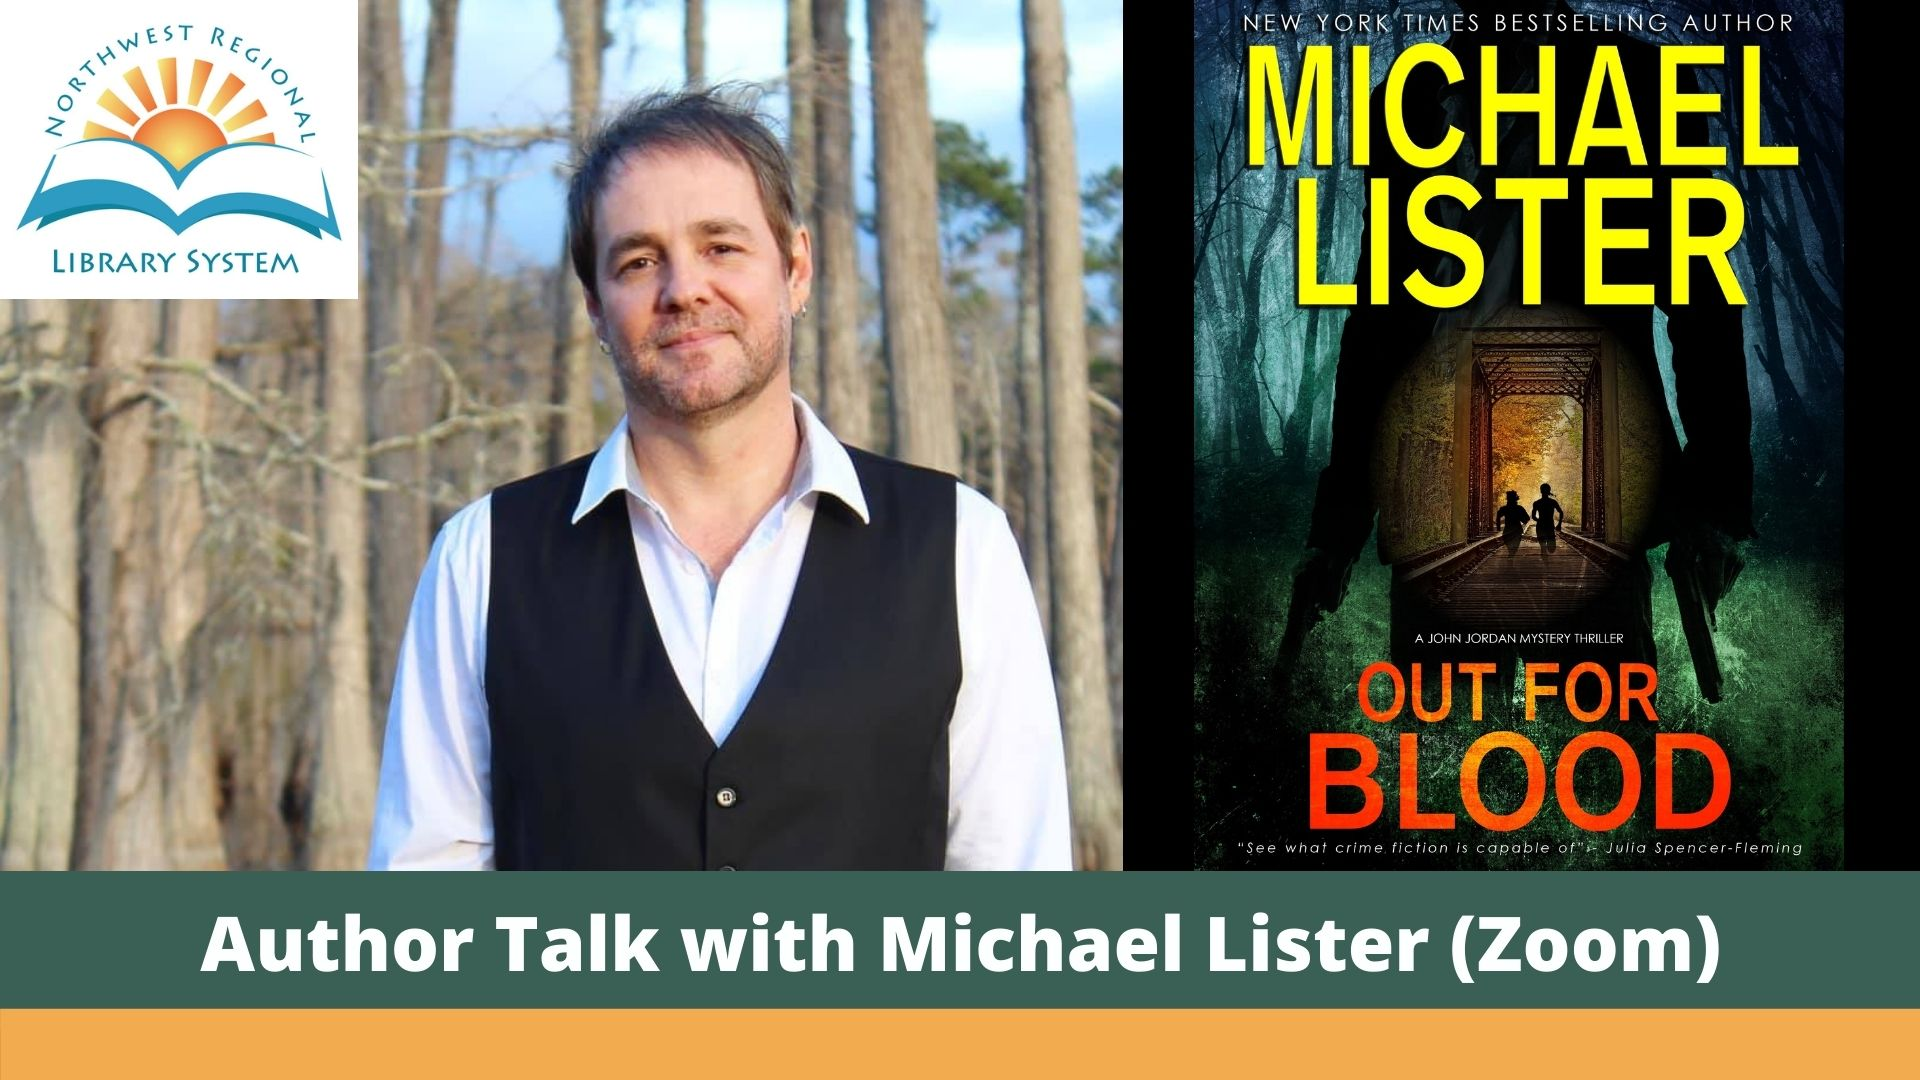 Michael Lister and his new title Out for Blood